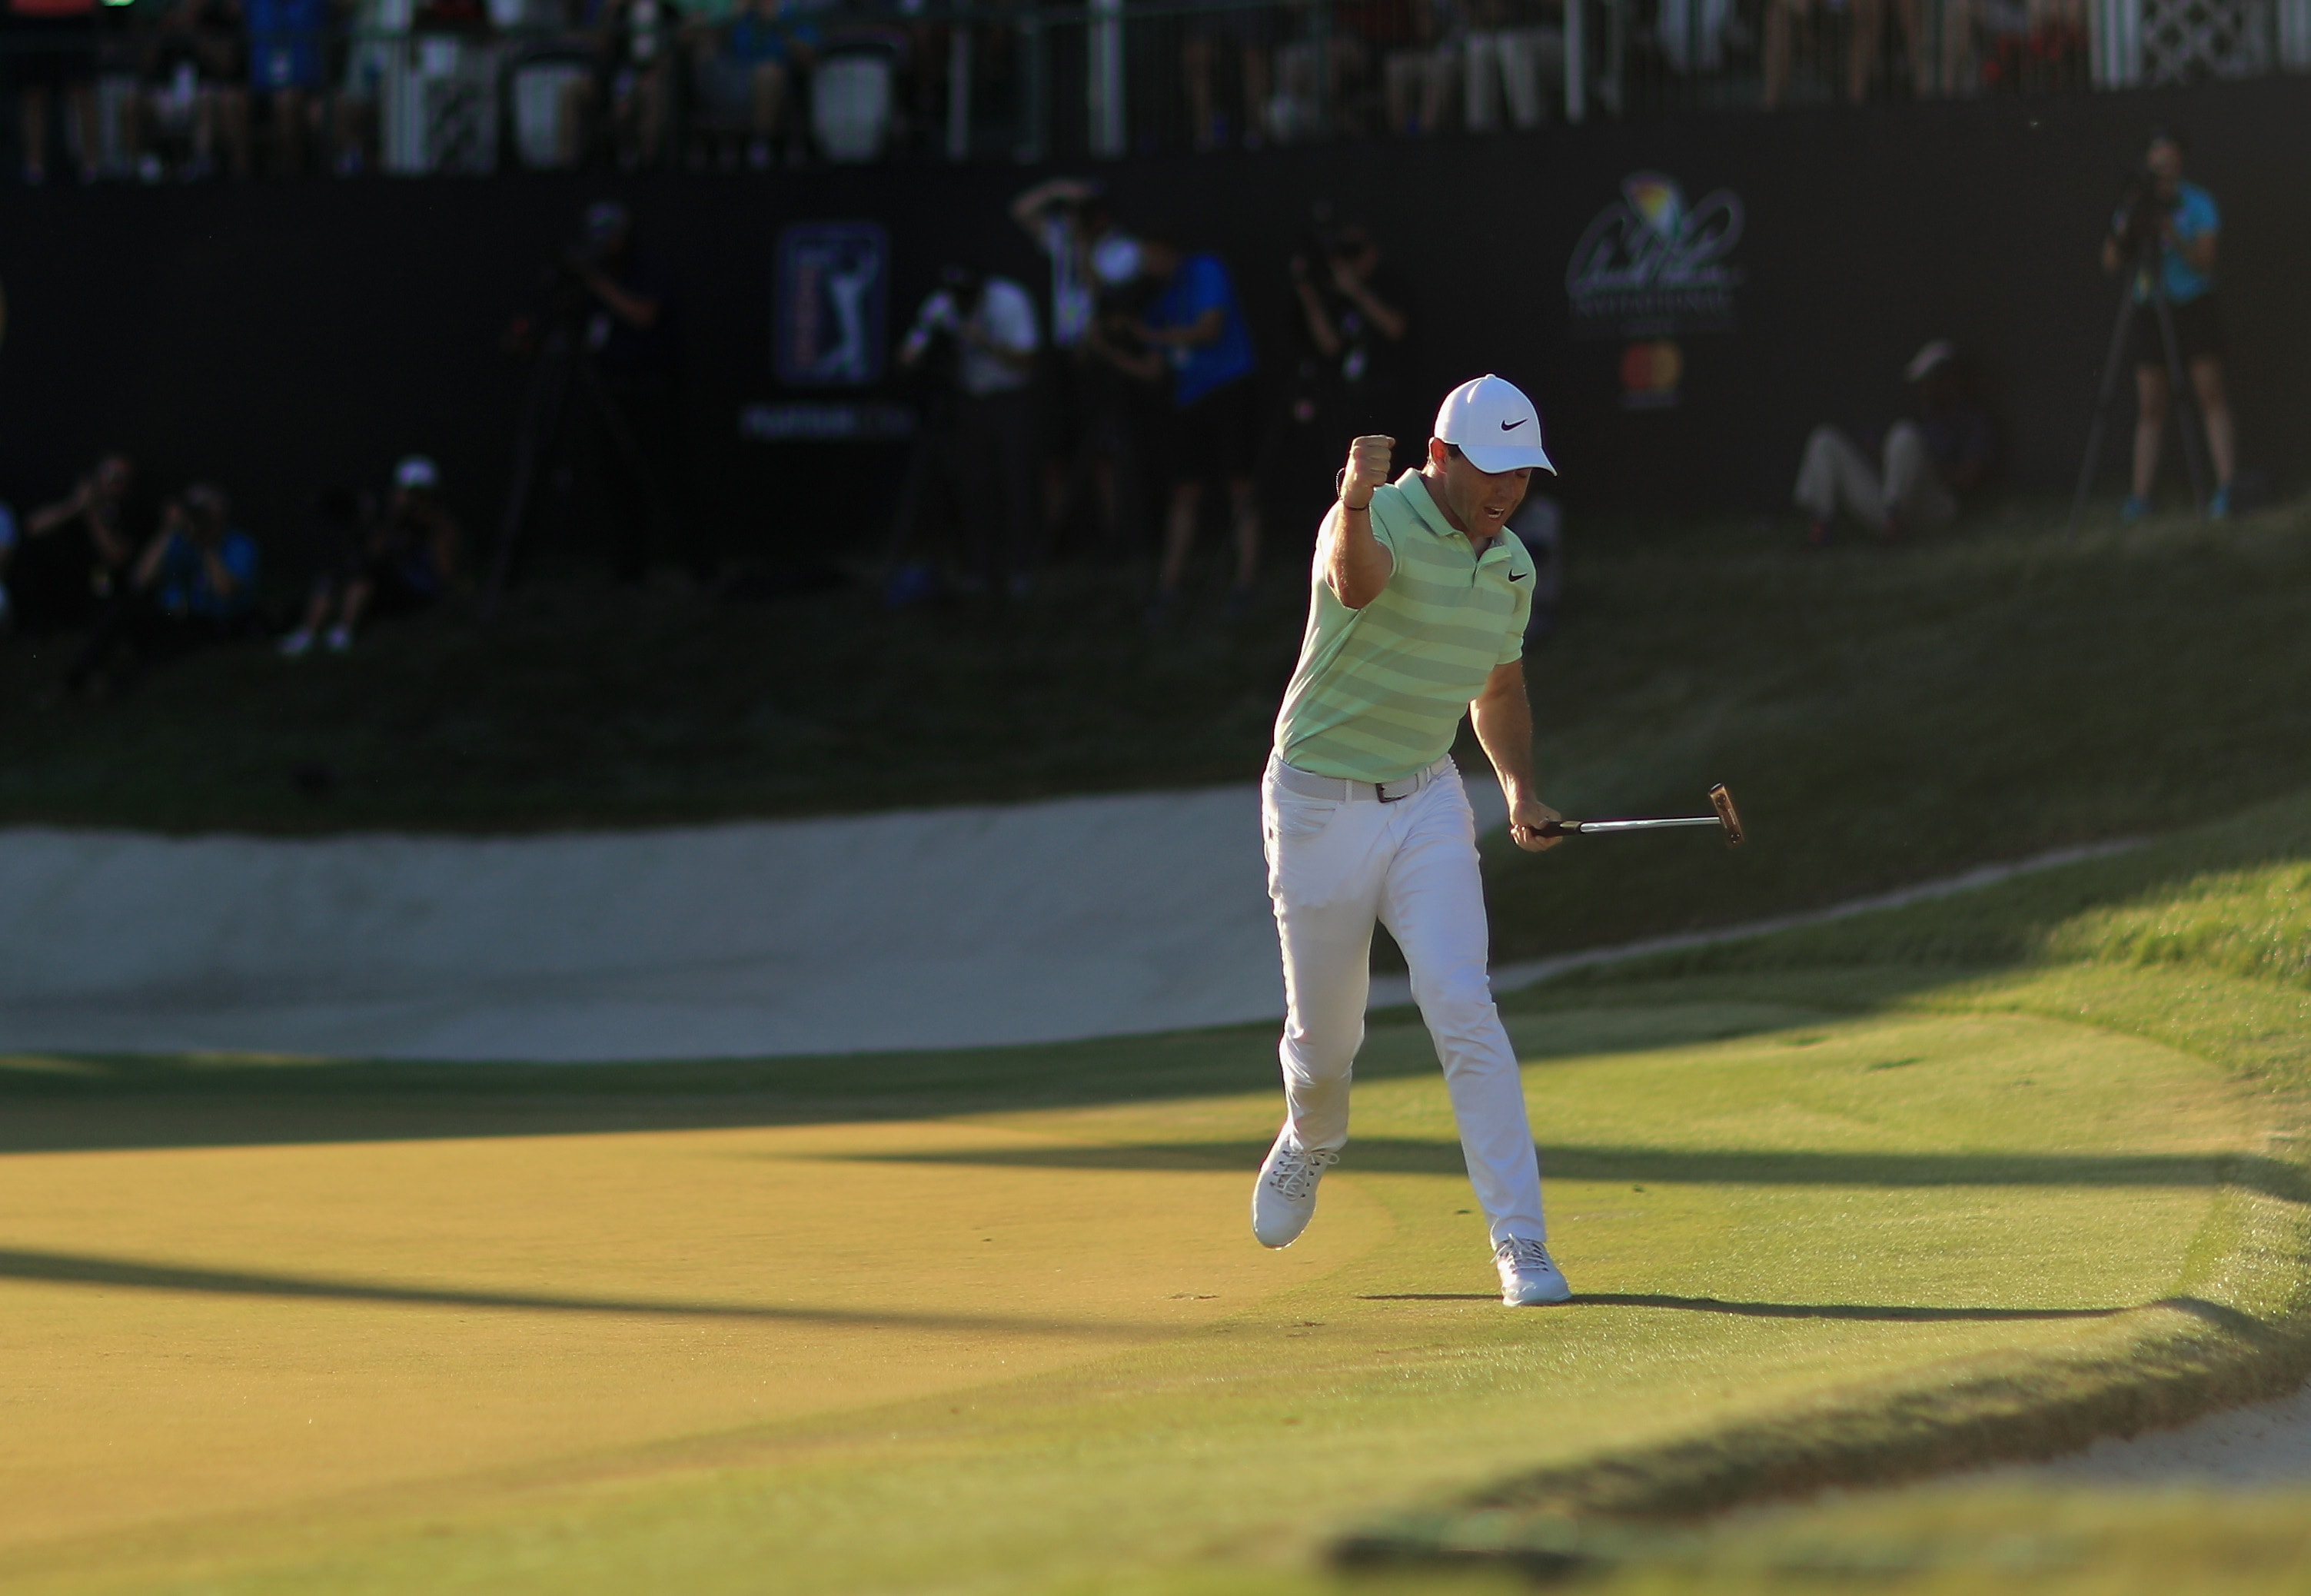 Rory McIlroy at the 2018 Arnold Palmer Invitational